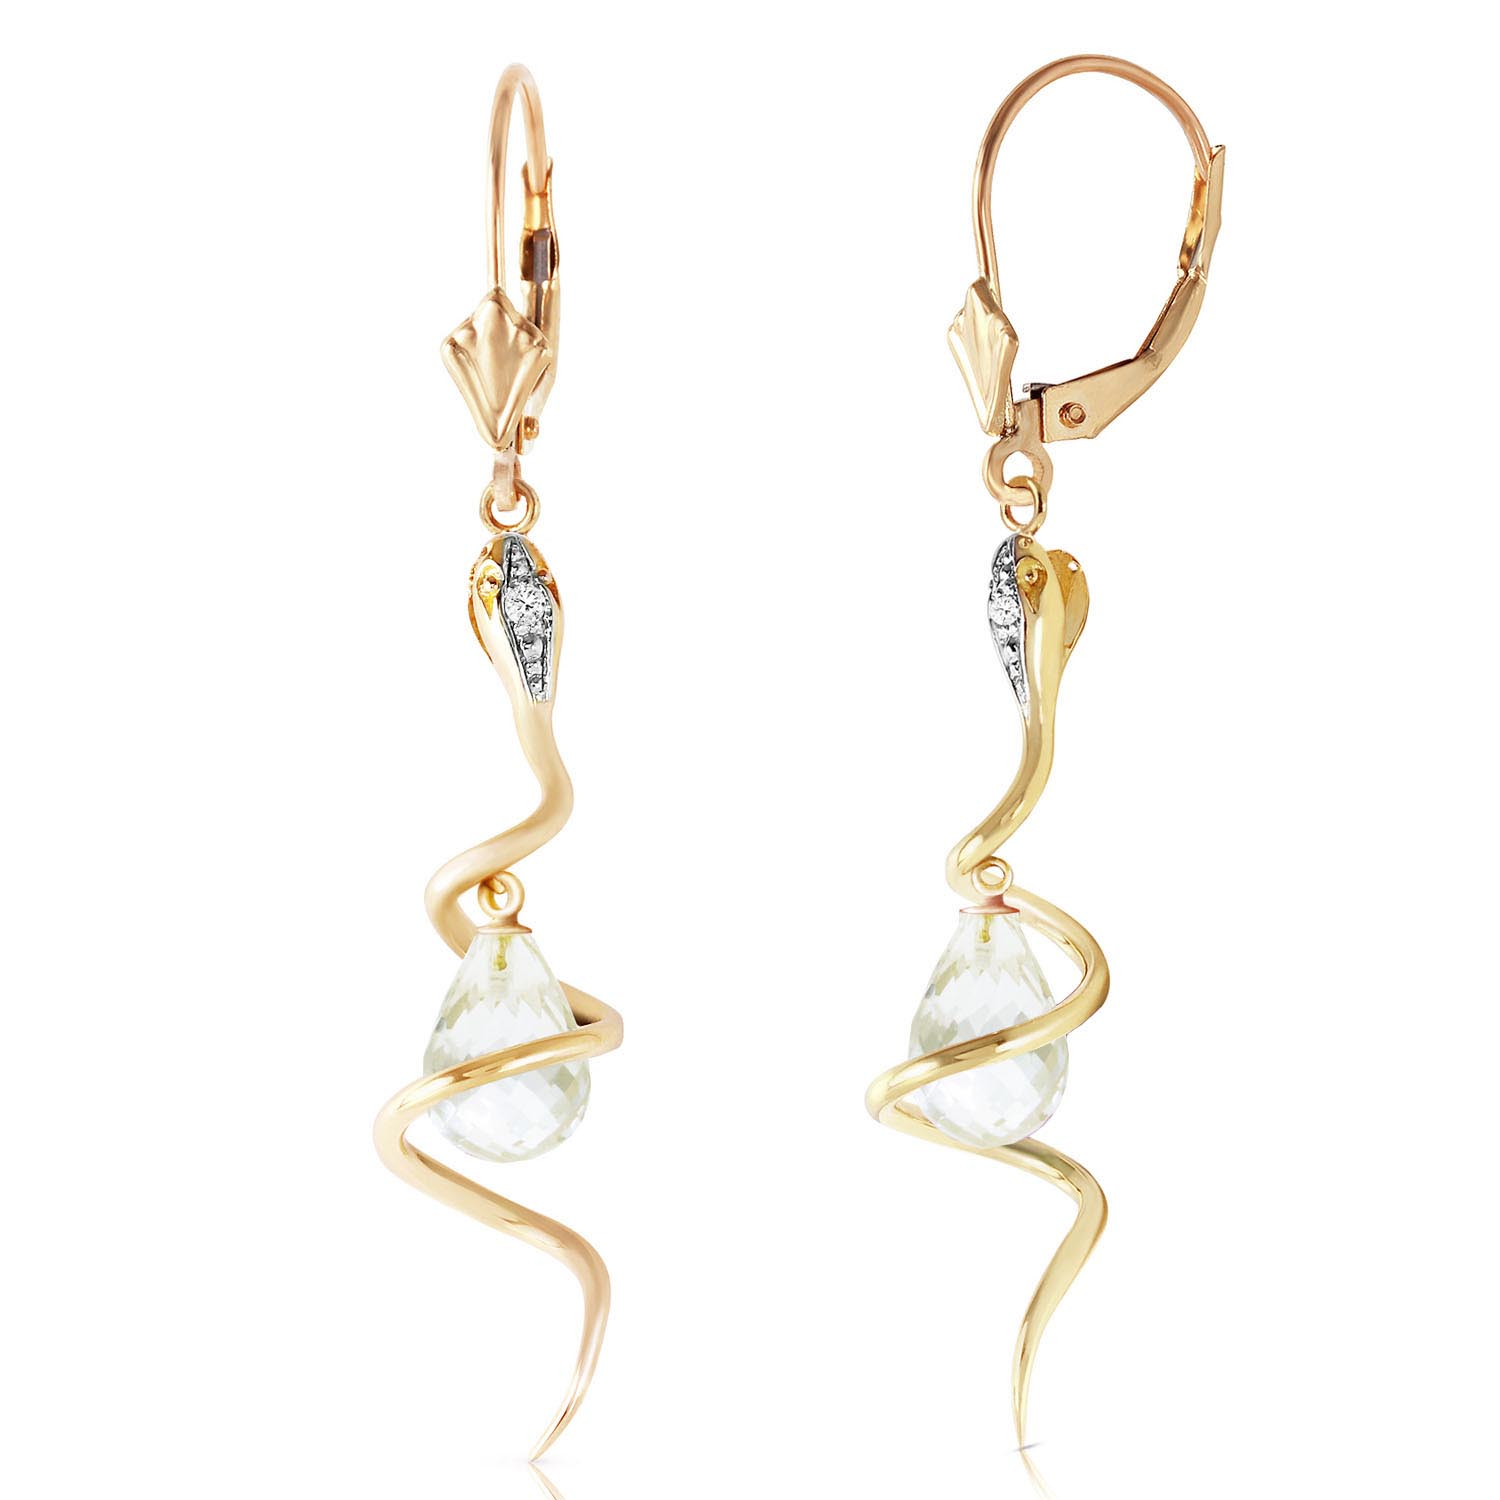 White Topaz and Diamond Serpent Earrings 4.5ctw in 9ct Gold